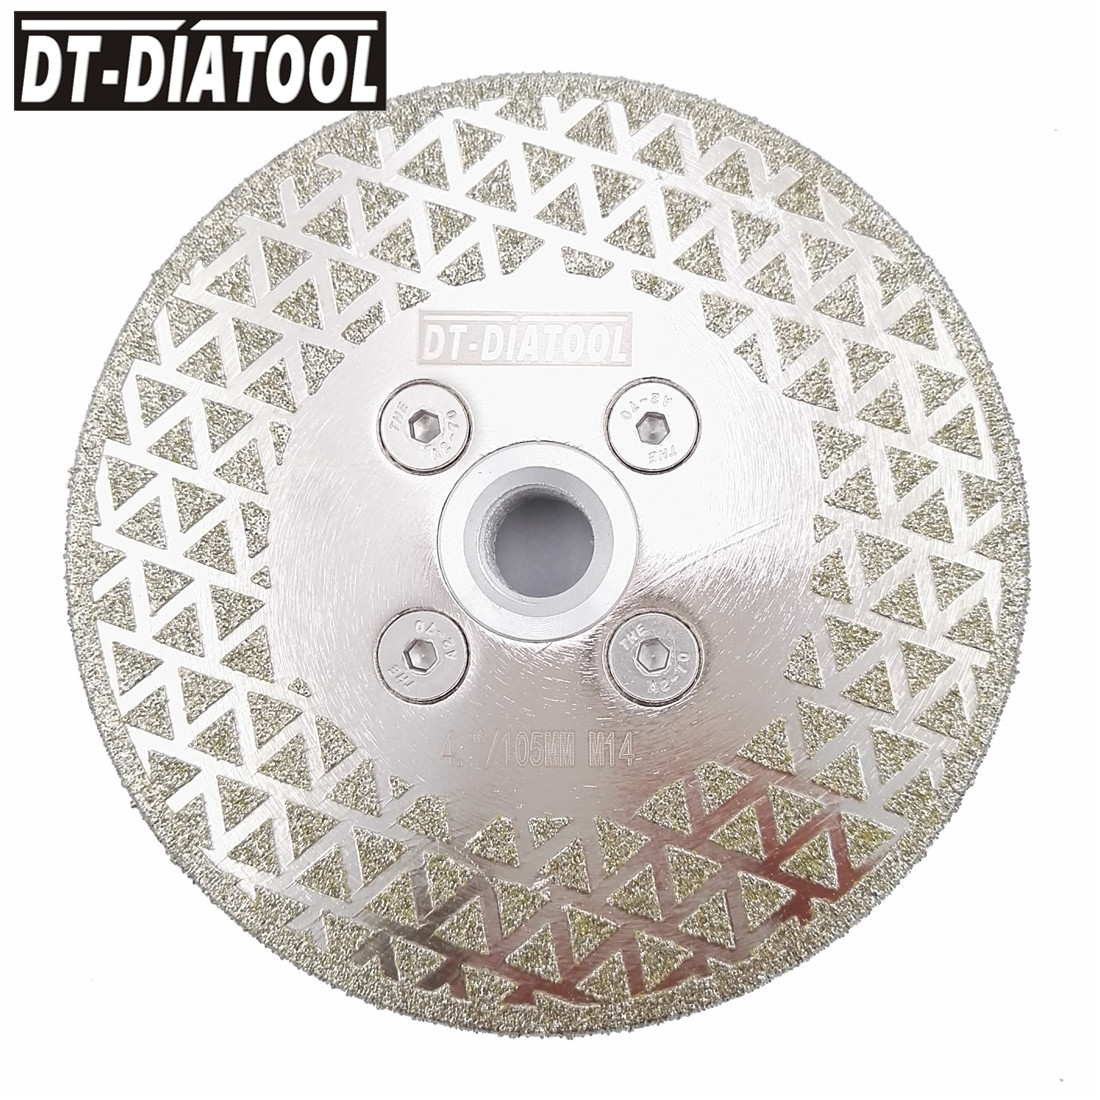 DT-DIATOOL 1pc Single Side Coated Electroplated Diamond Cutting Grinding Disc M14 Or 5/8-11 Thread Granite Marble Tile Saw Blade